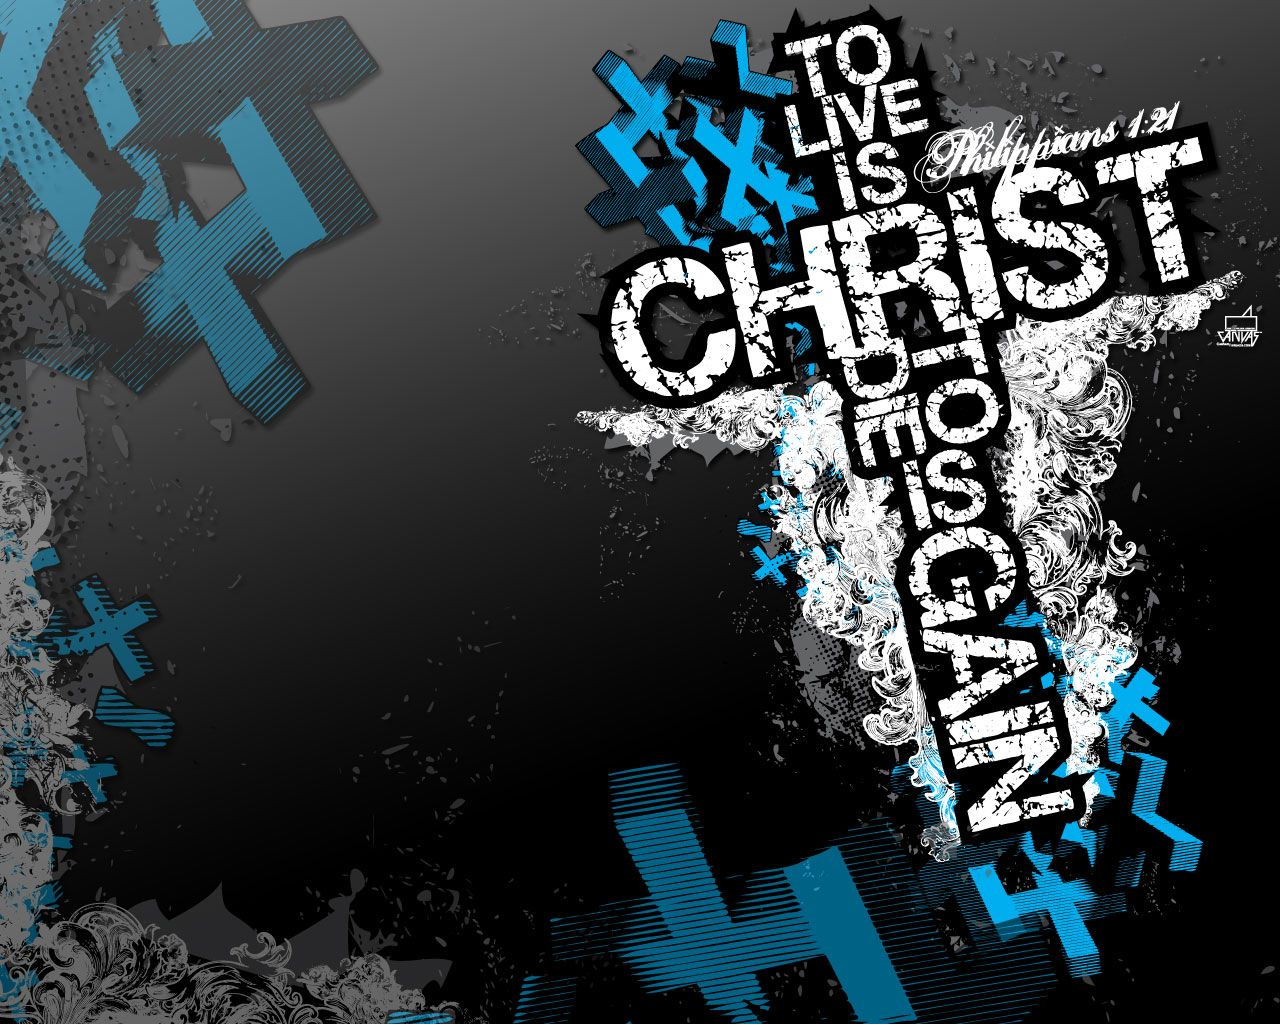 Christian Youth Wallpaper 1920×1080 Christian Youth Wallpapers (41 Wallpapers) | Adorable ...